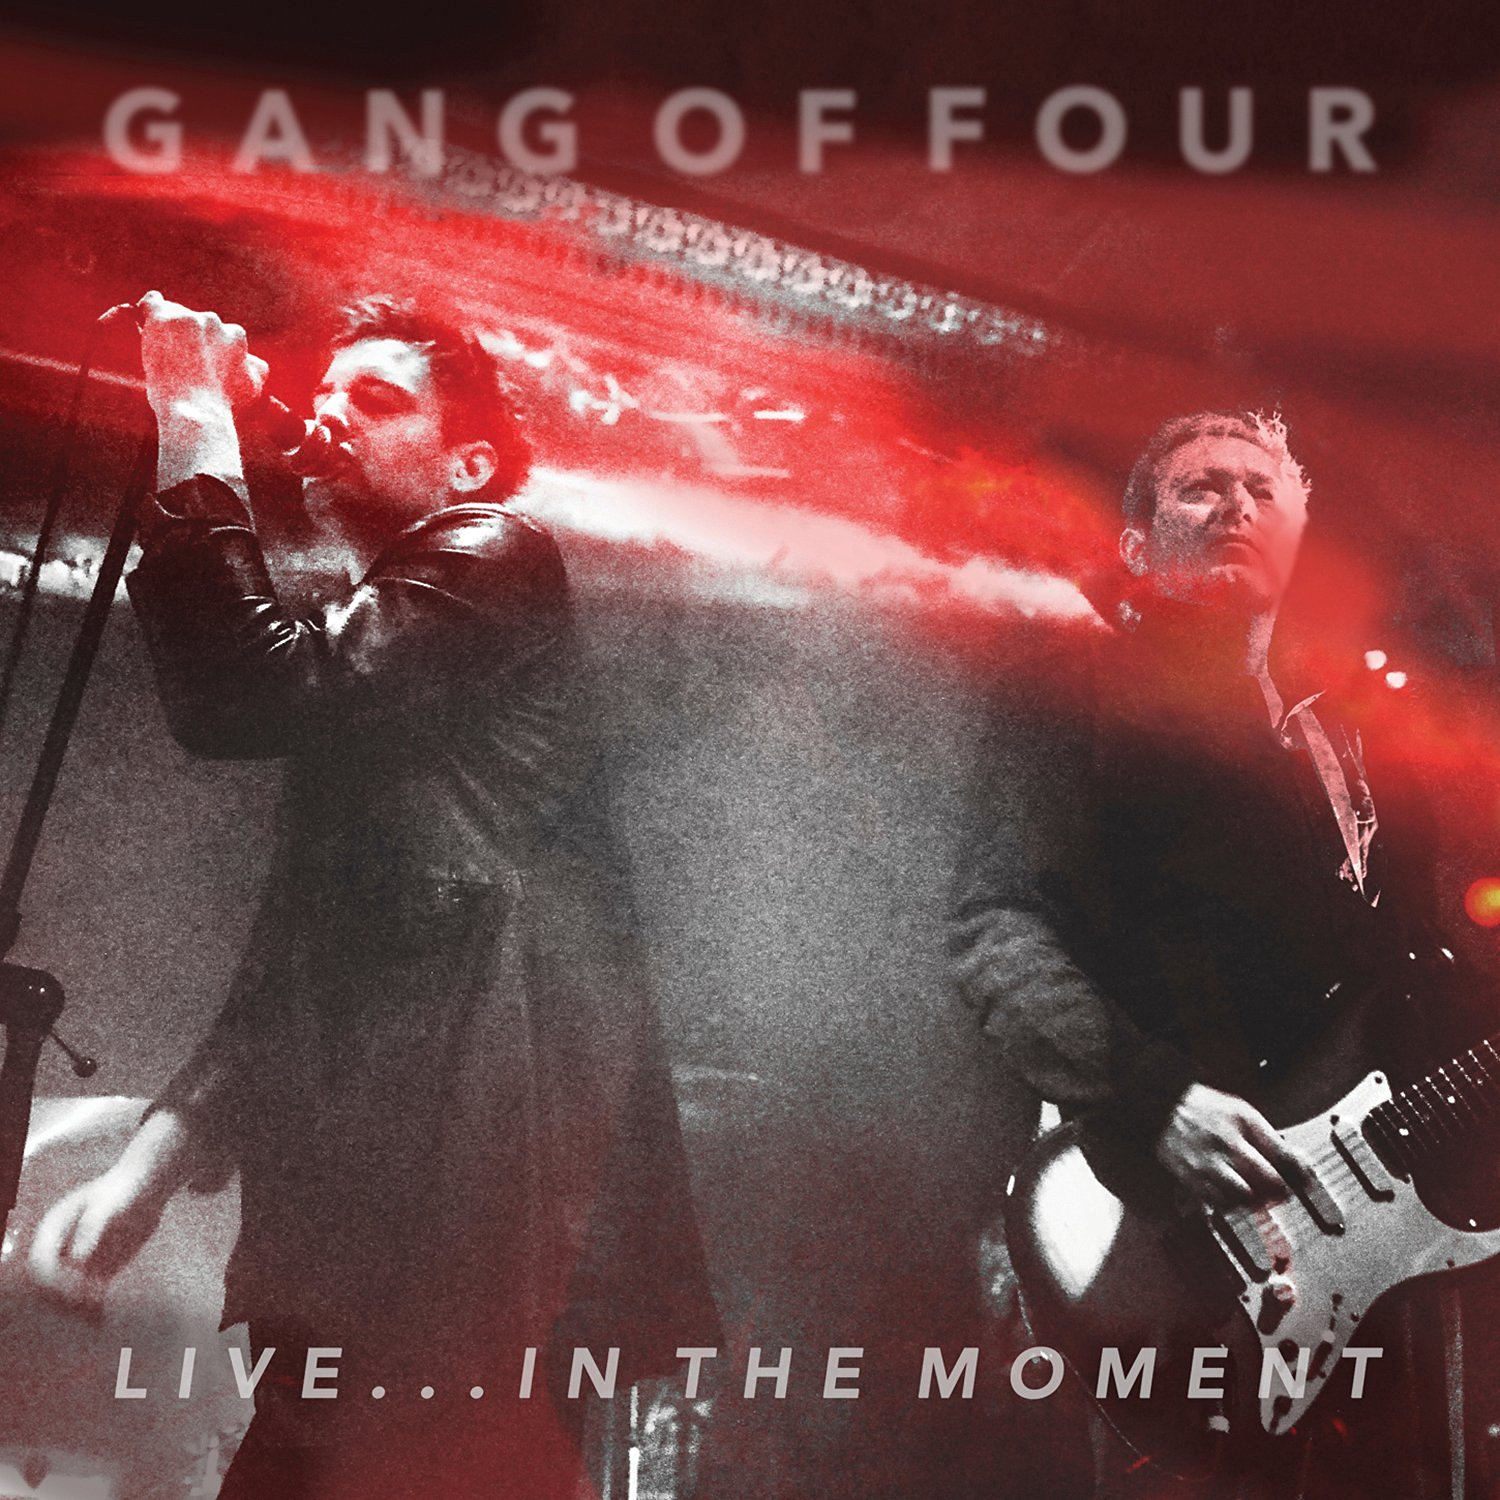 gang-of-four-live-in-the-moment